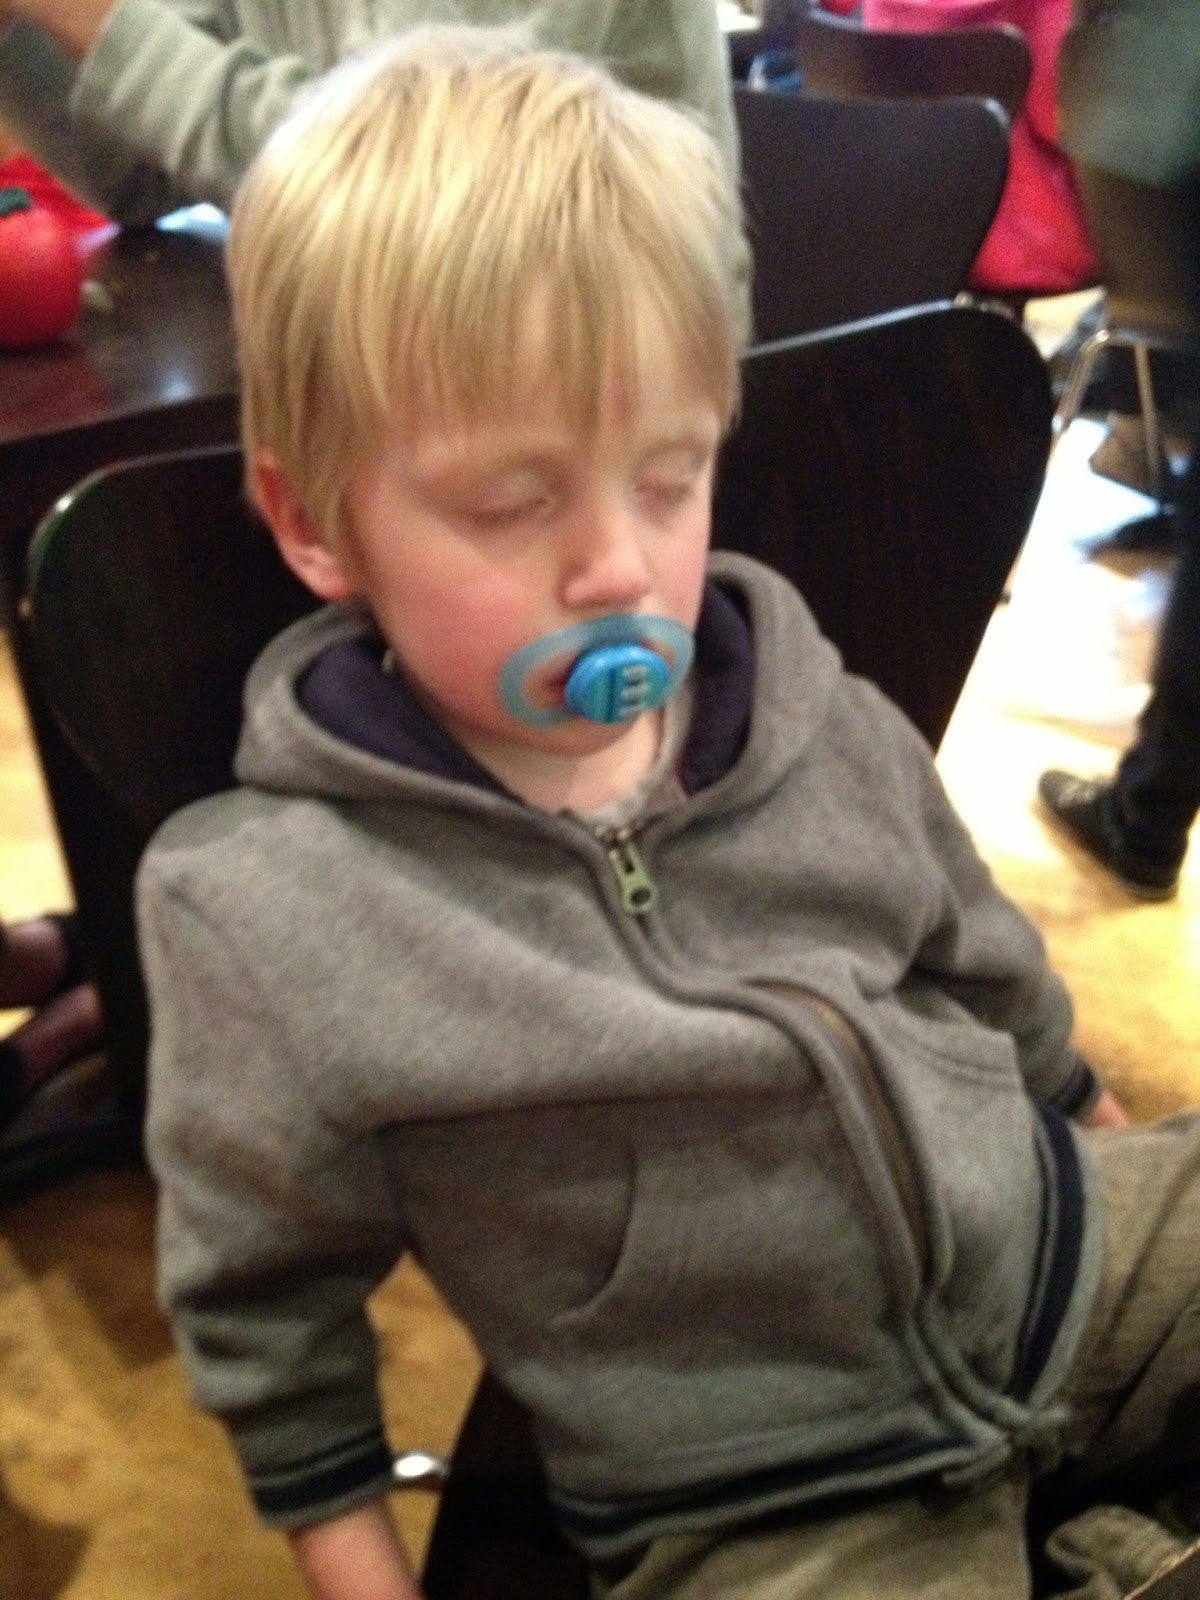 child asleep with dummy/soother